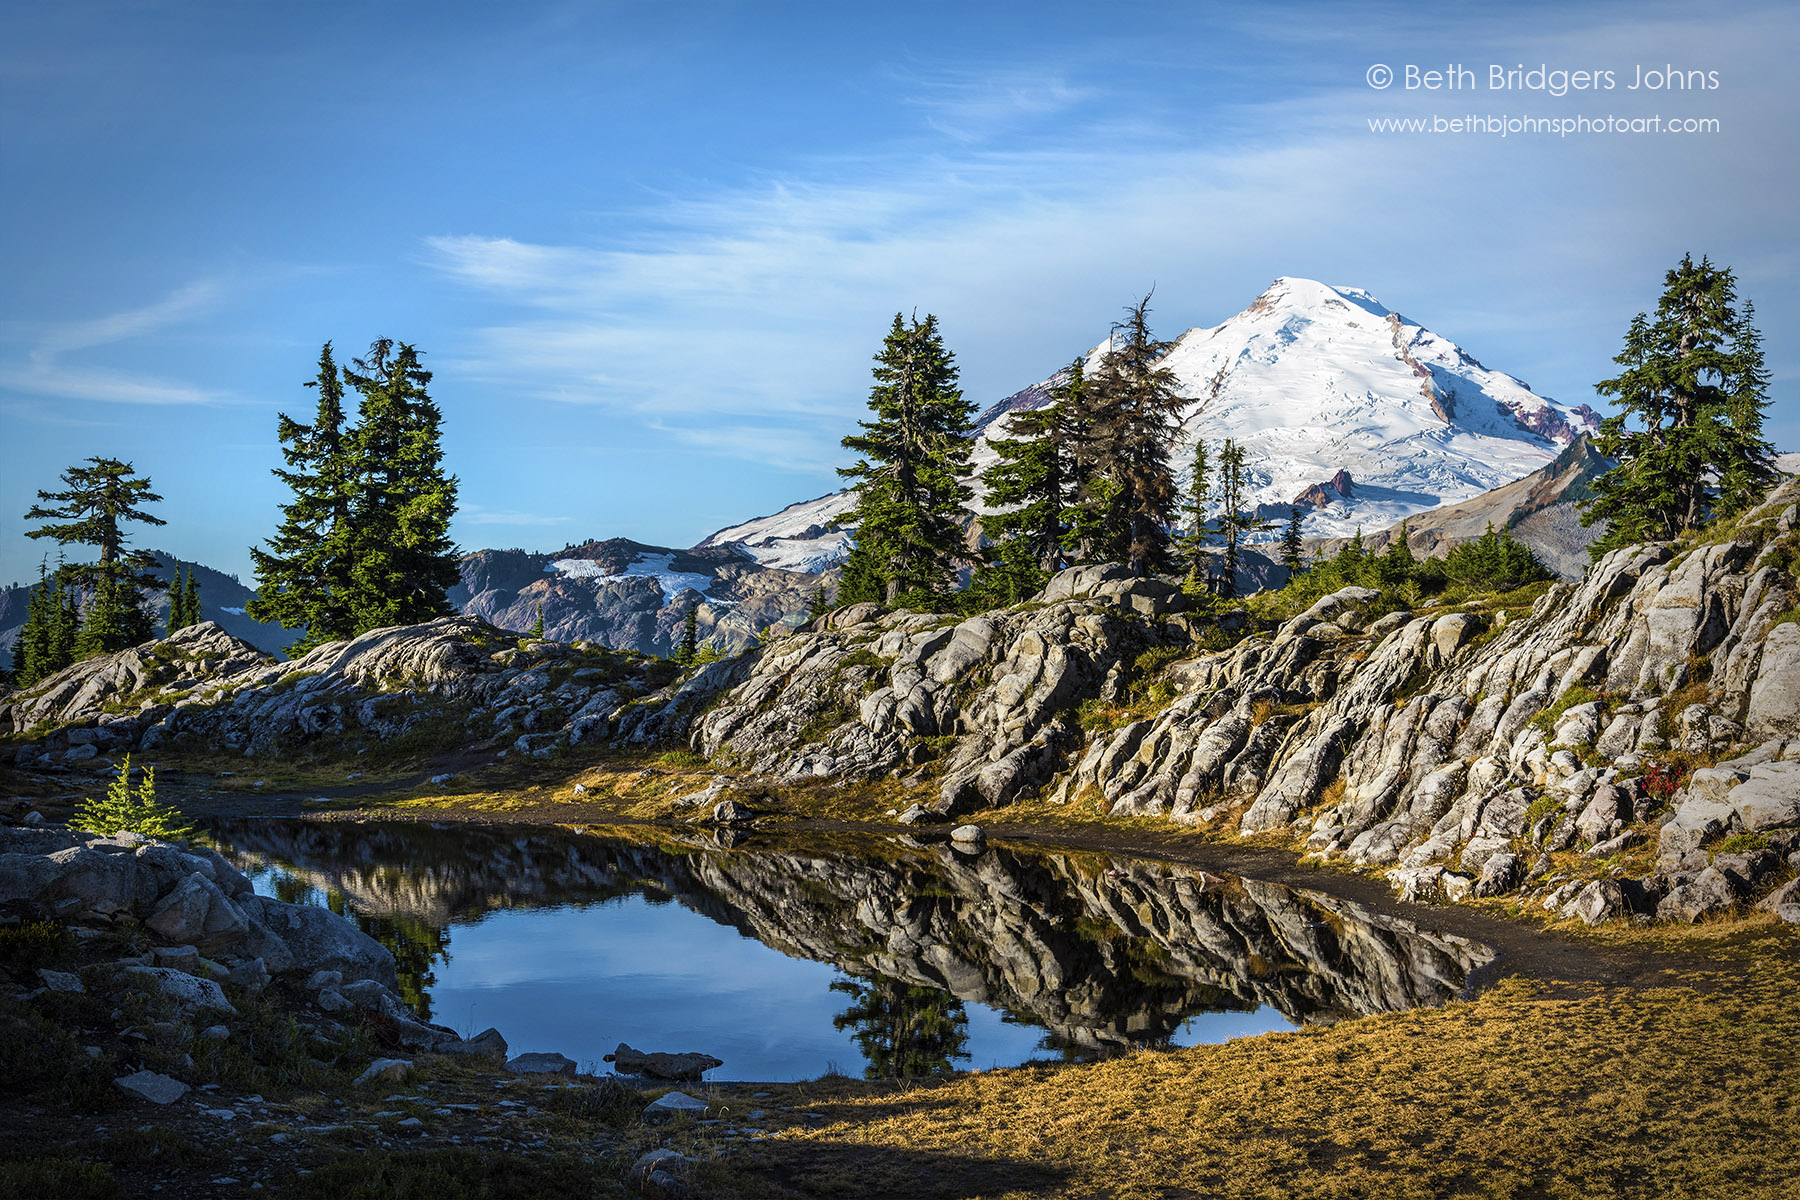 Mount Baker & Reflections